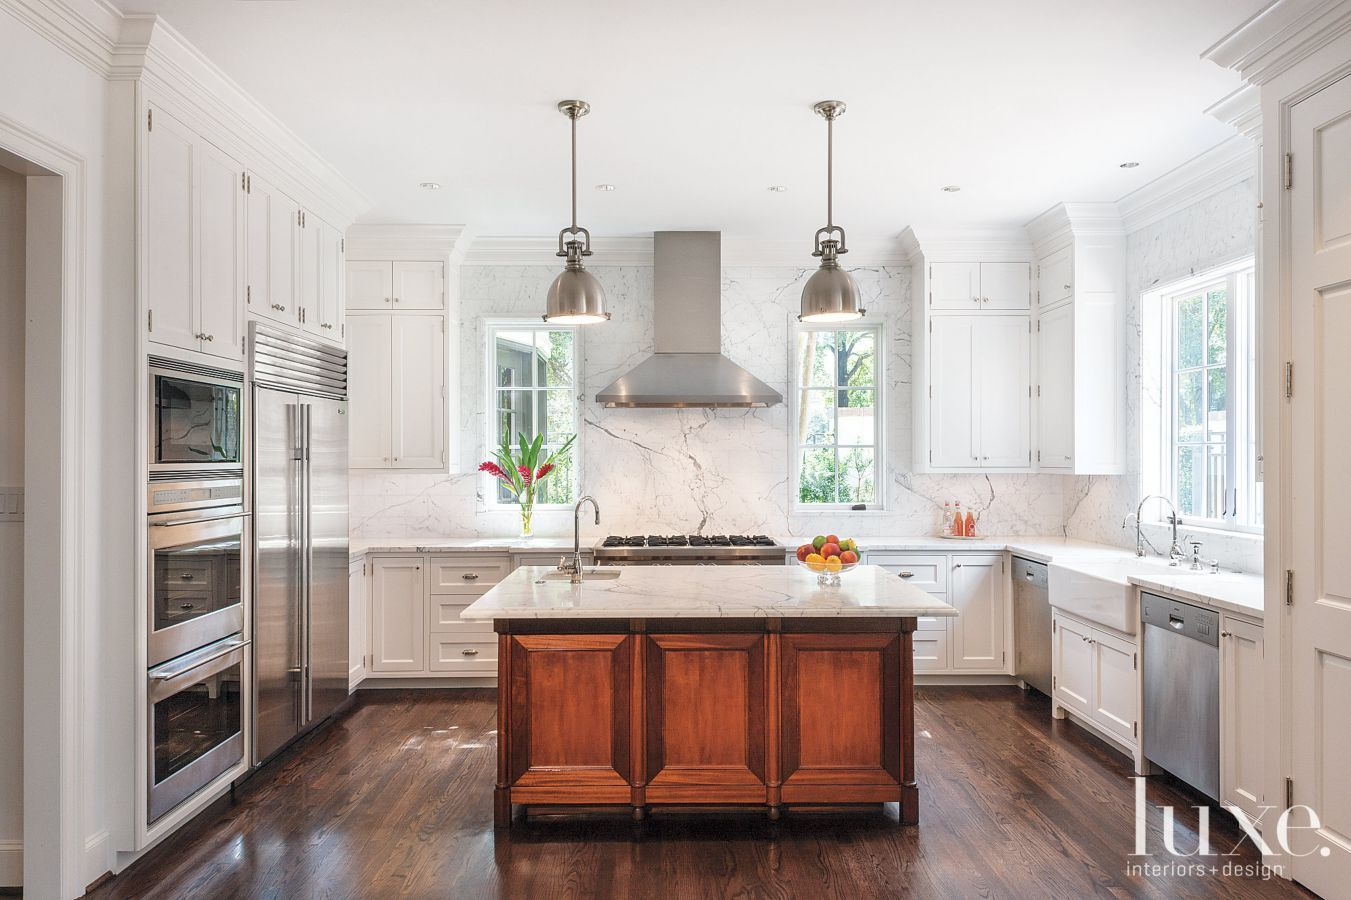 Vasquez Doubles Design The Custom Kitchen Island And Cabinetry From Vasquez